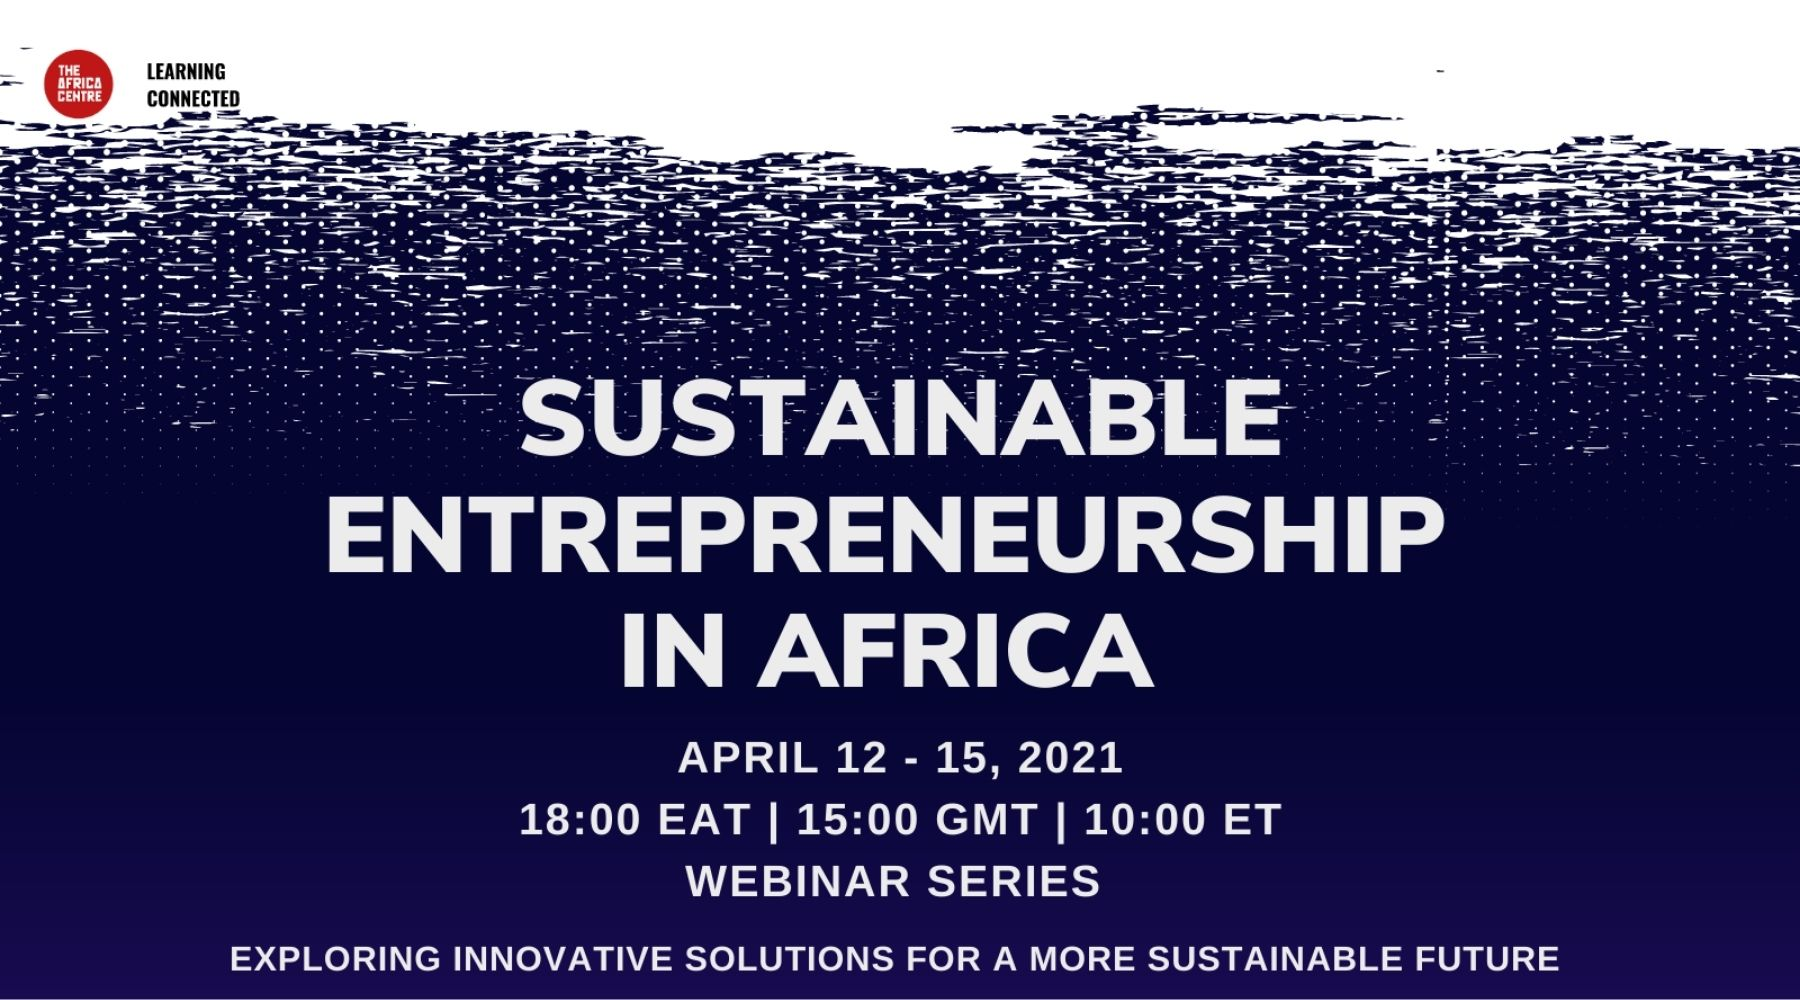 Entrpreneurship in Africa